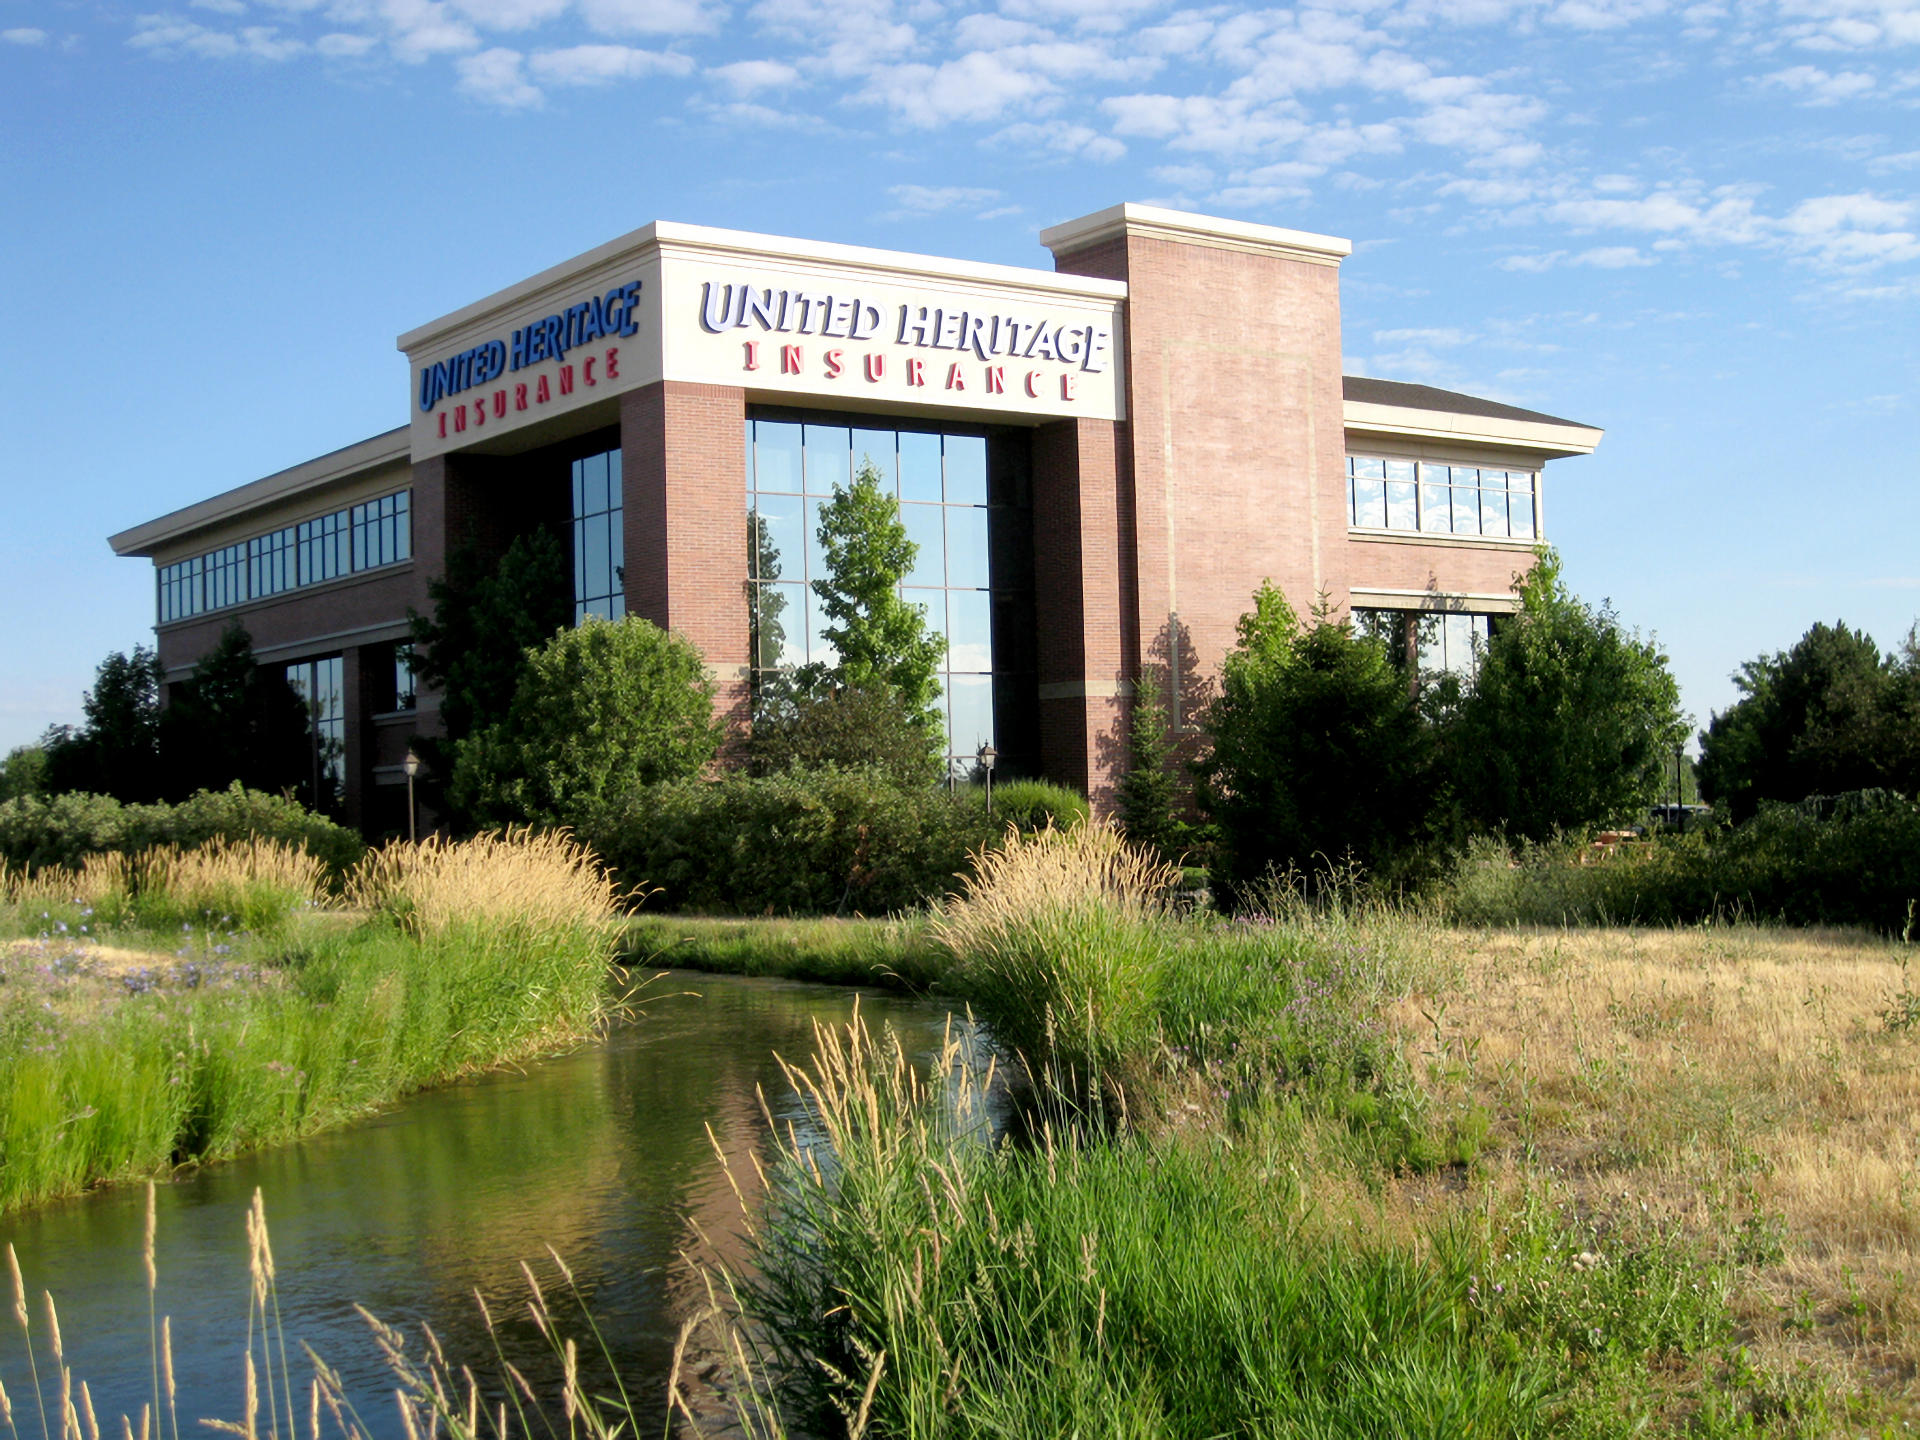 A History Of United Heritage Property Casualty Company